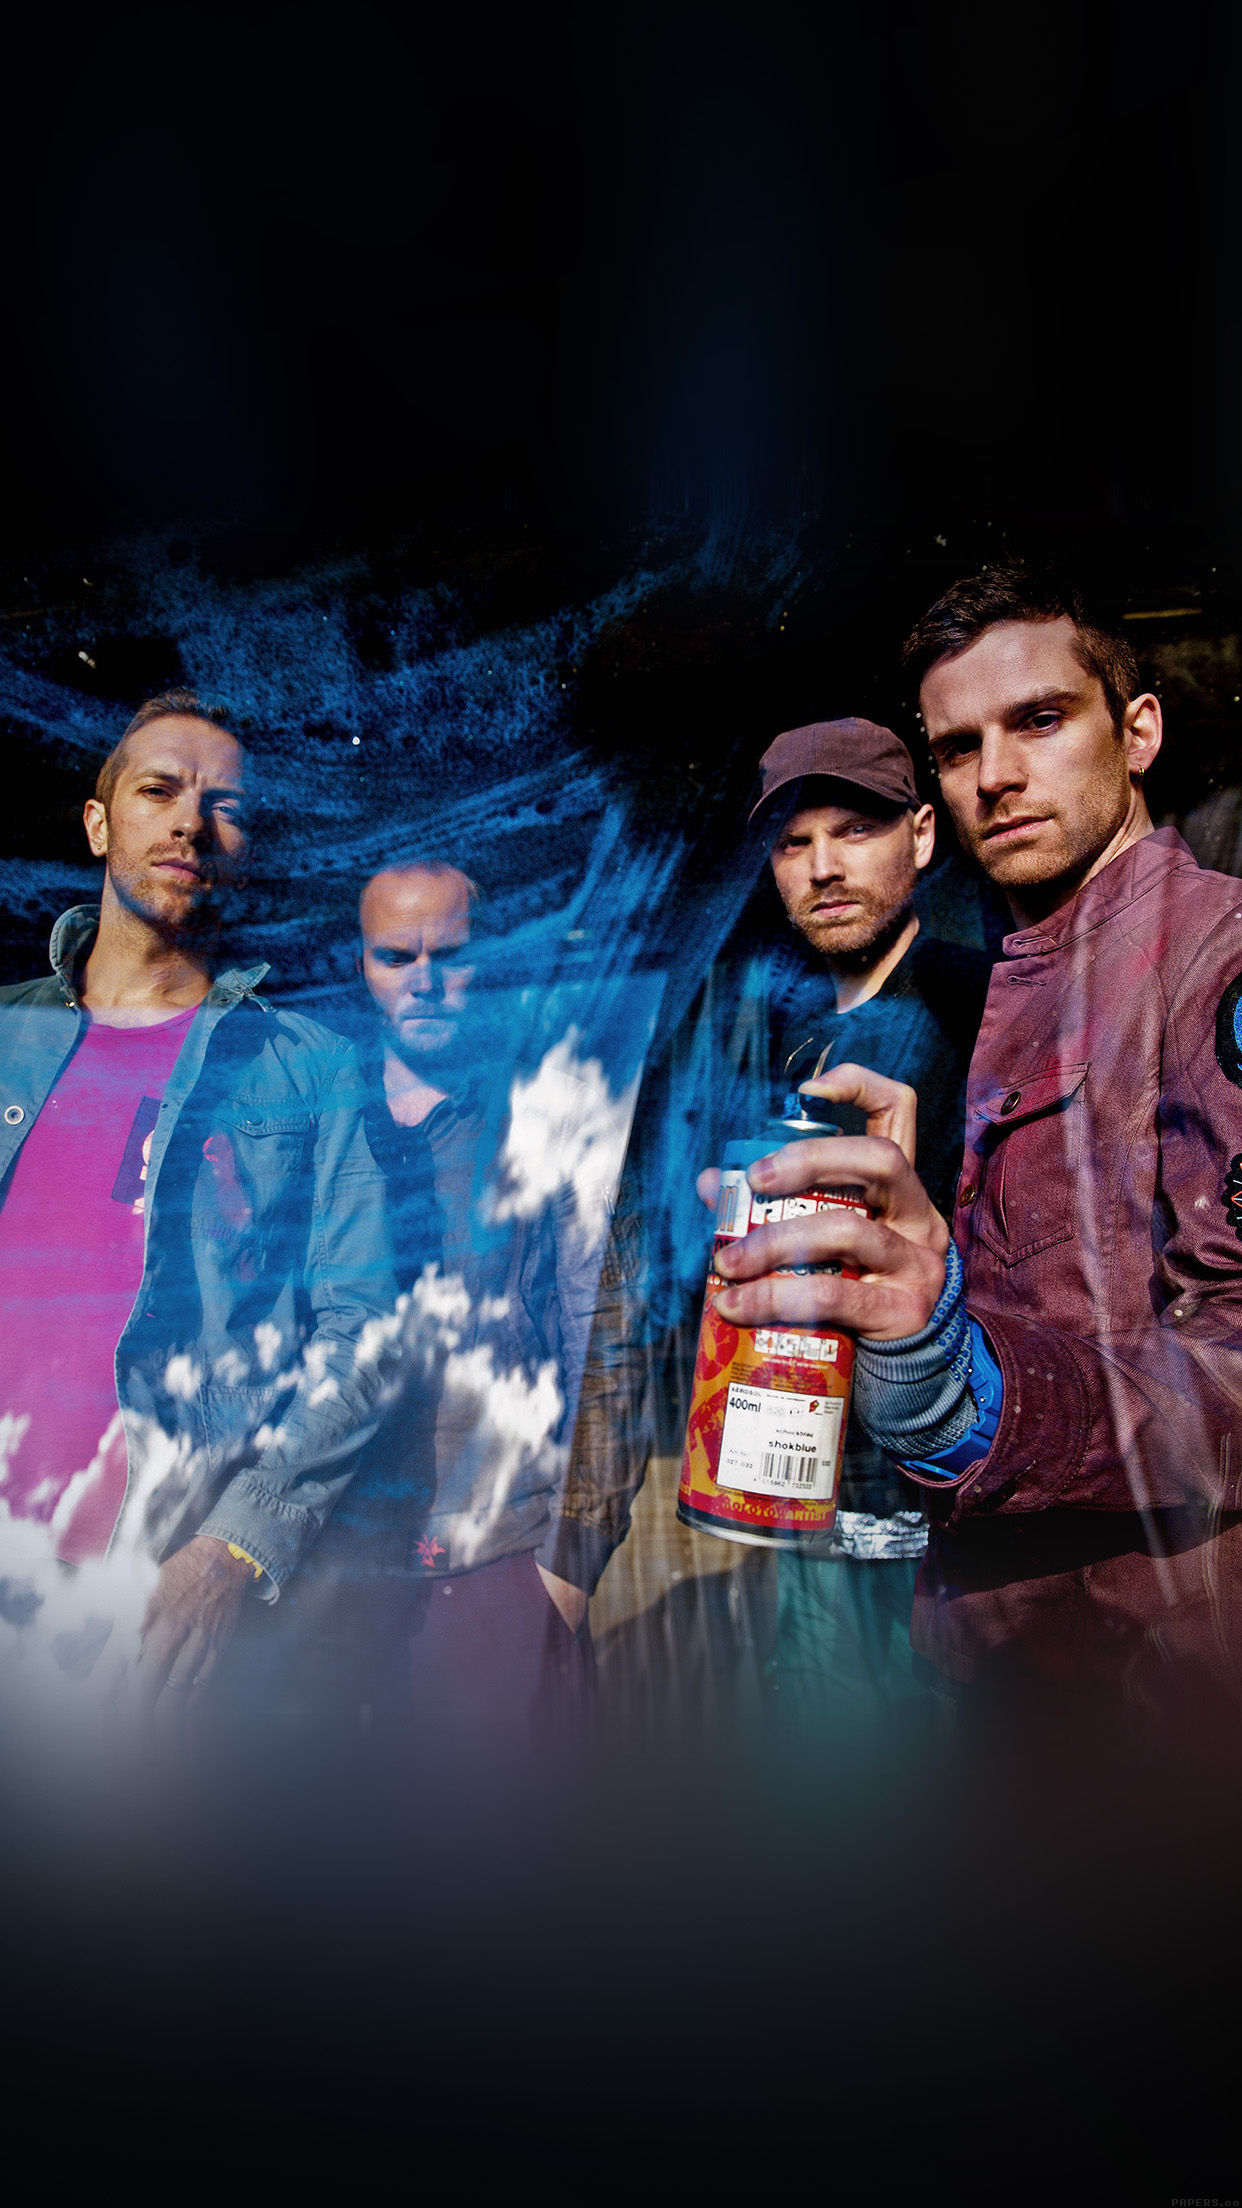 Coldplay Music Band Celebrity 3Wallpapers iPhone Parallax Coldplay: Music band celebrity